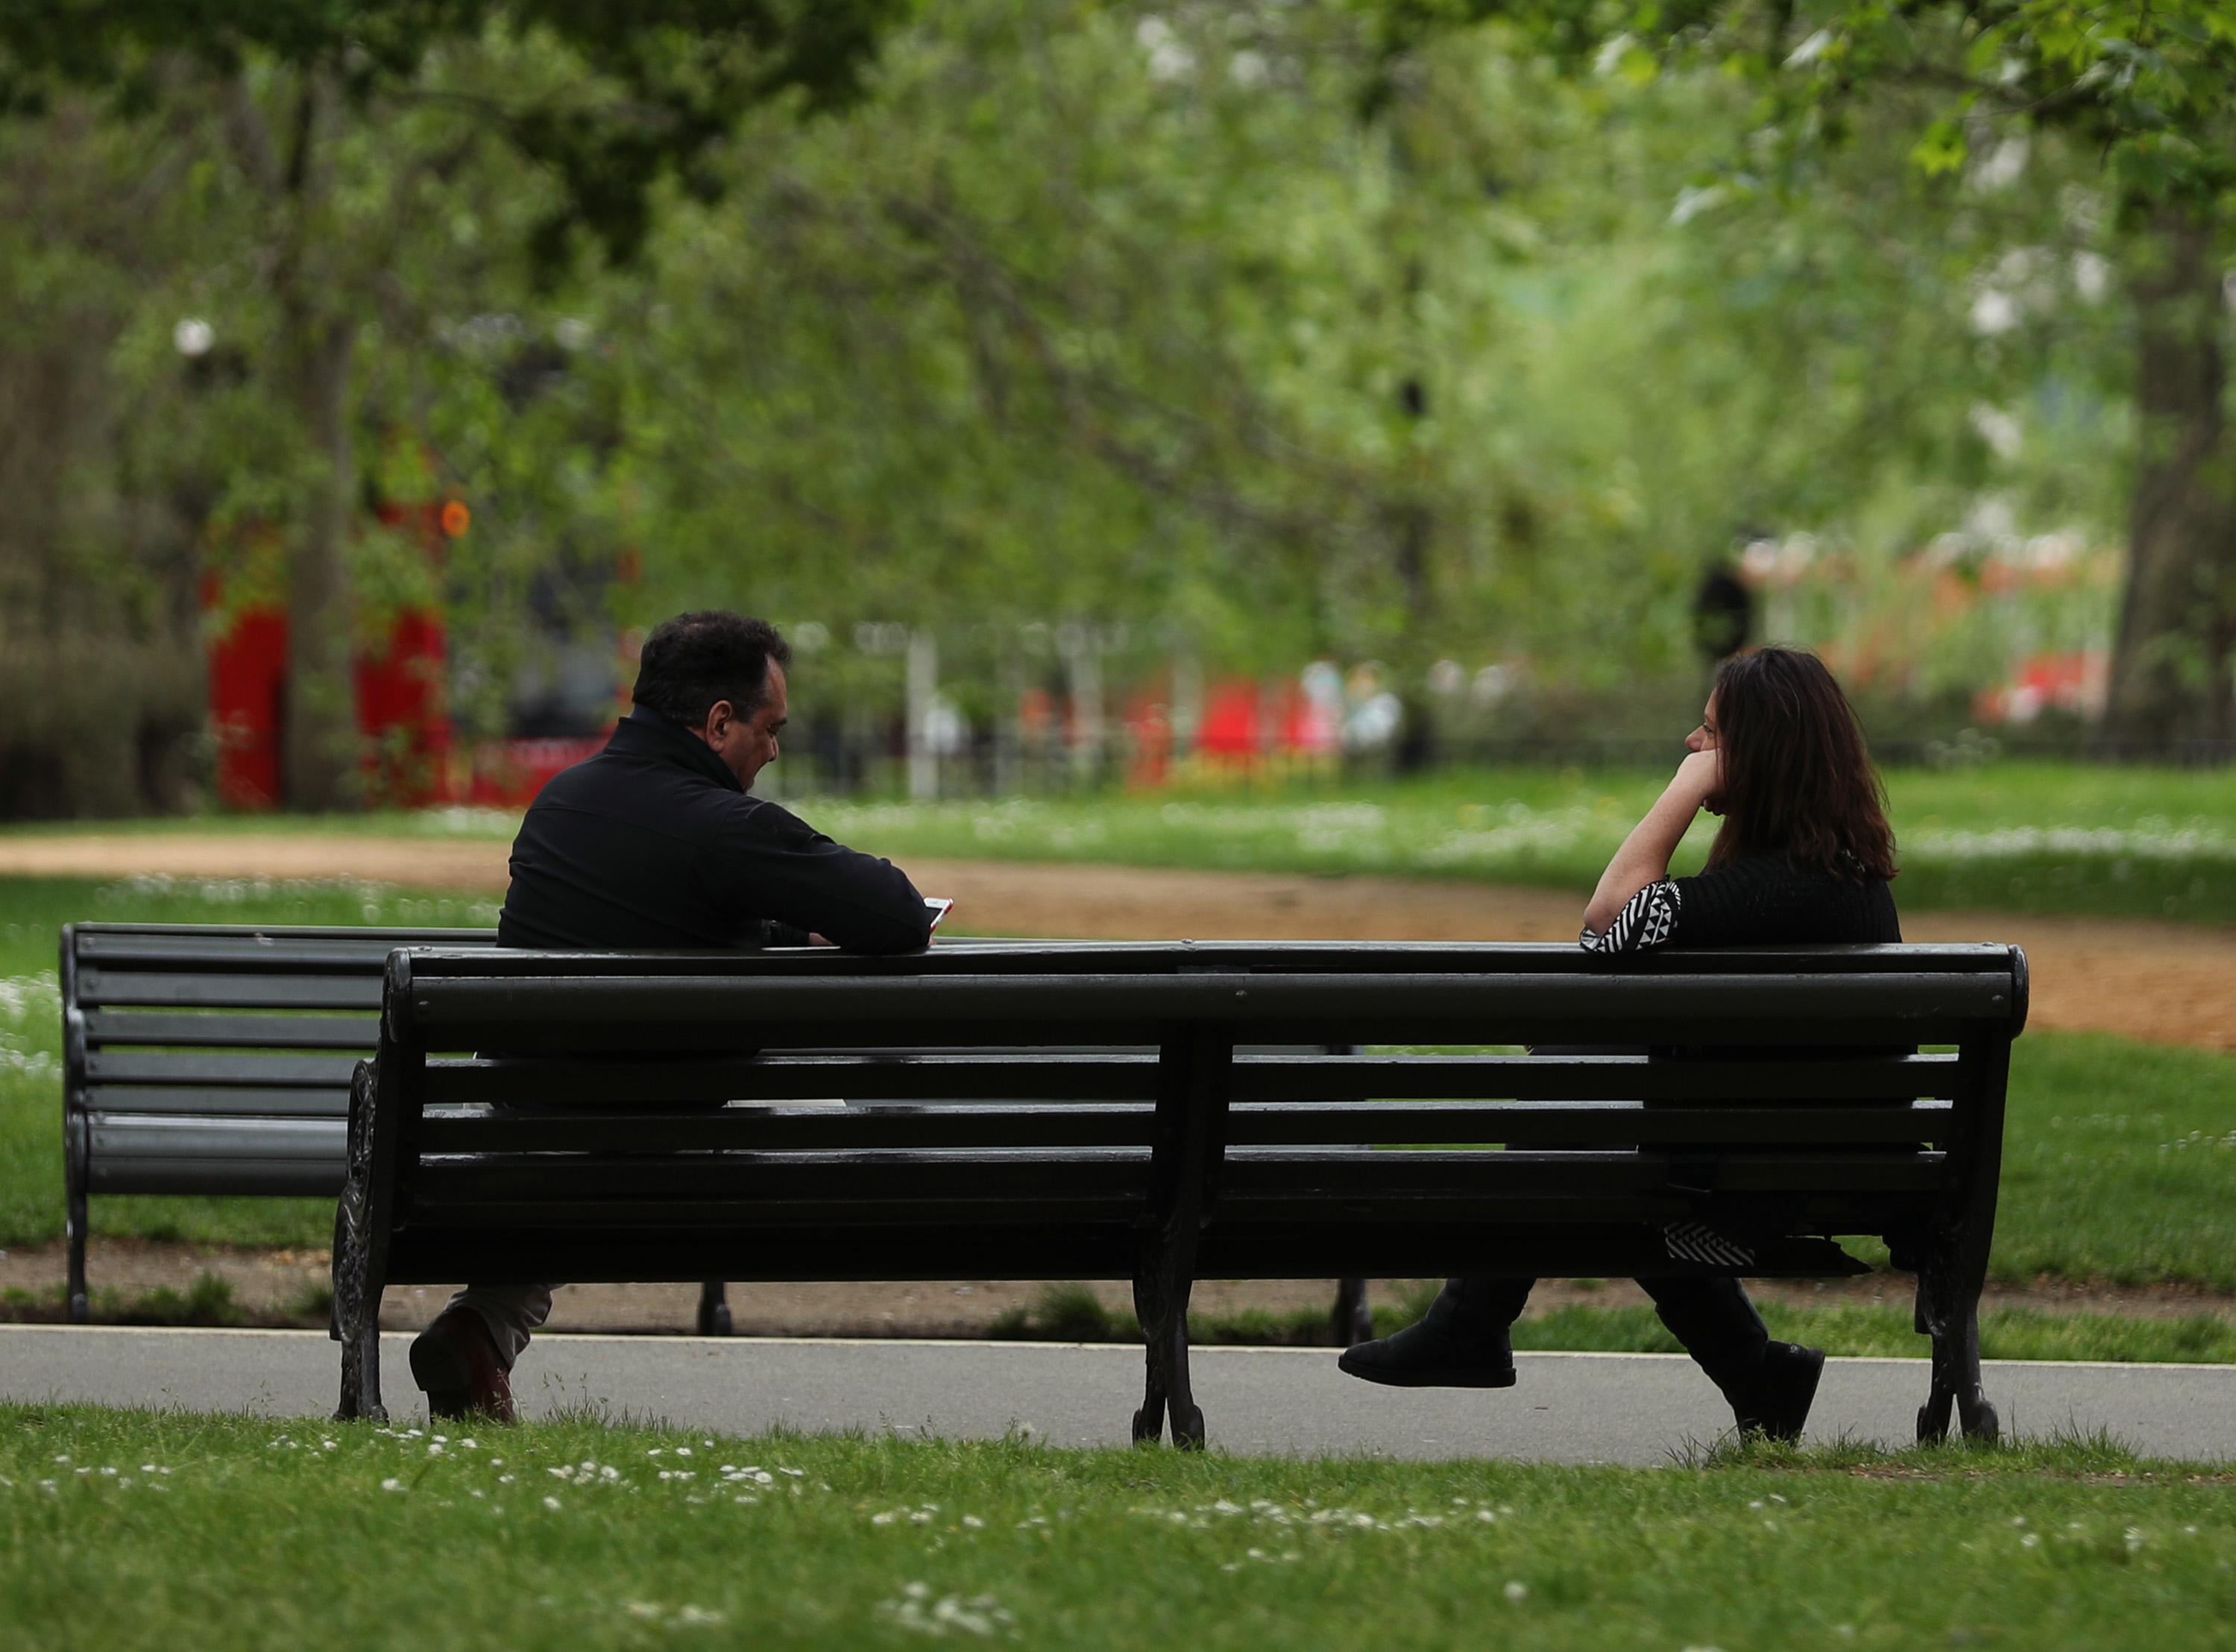 People observing social distancing on a bench in Hyde Park, London, as the UK continues in lockdown to help curb the spread of the coronavirus.